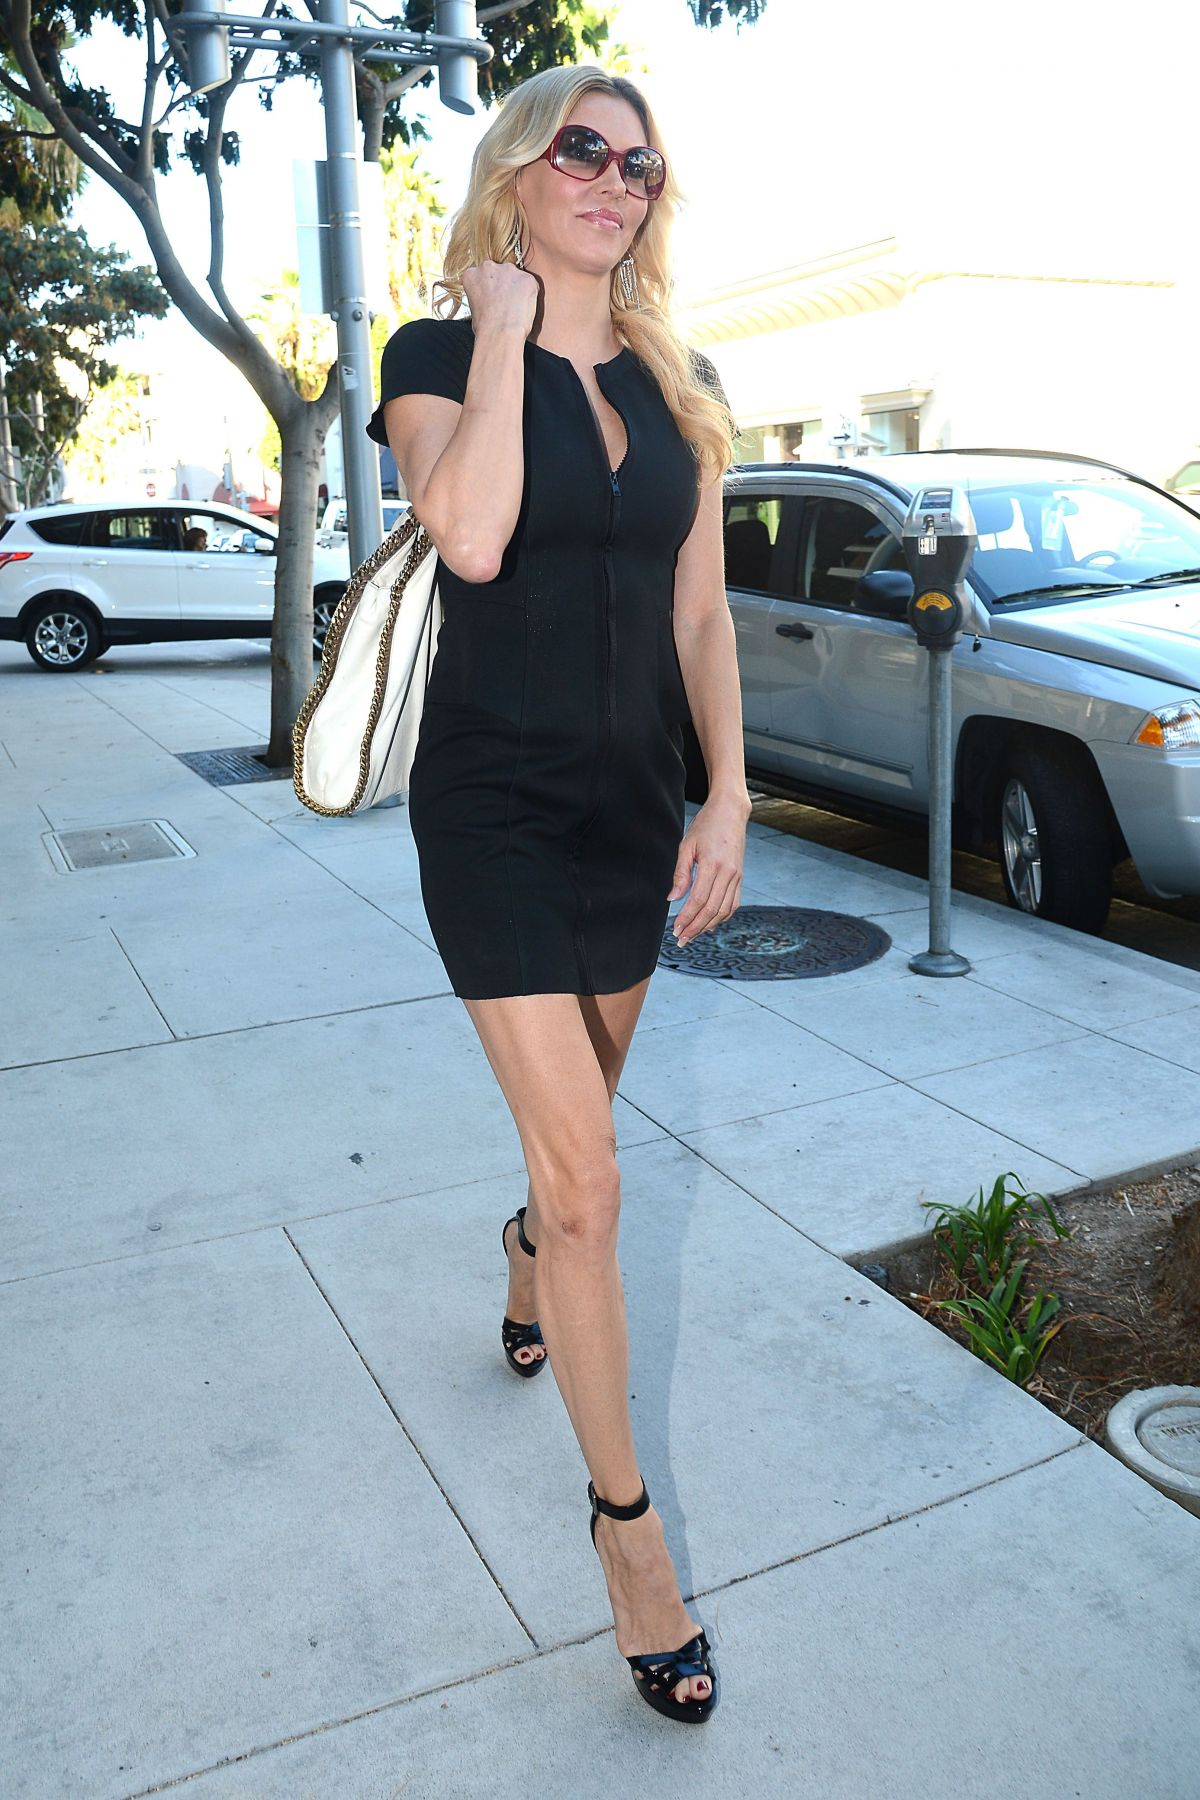 Brandi Glanville Leaves The Hotel in West Hollywood